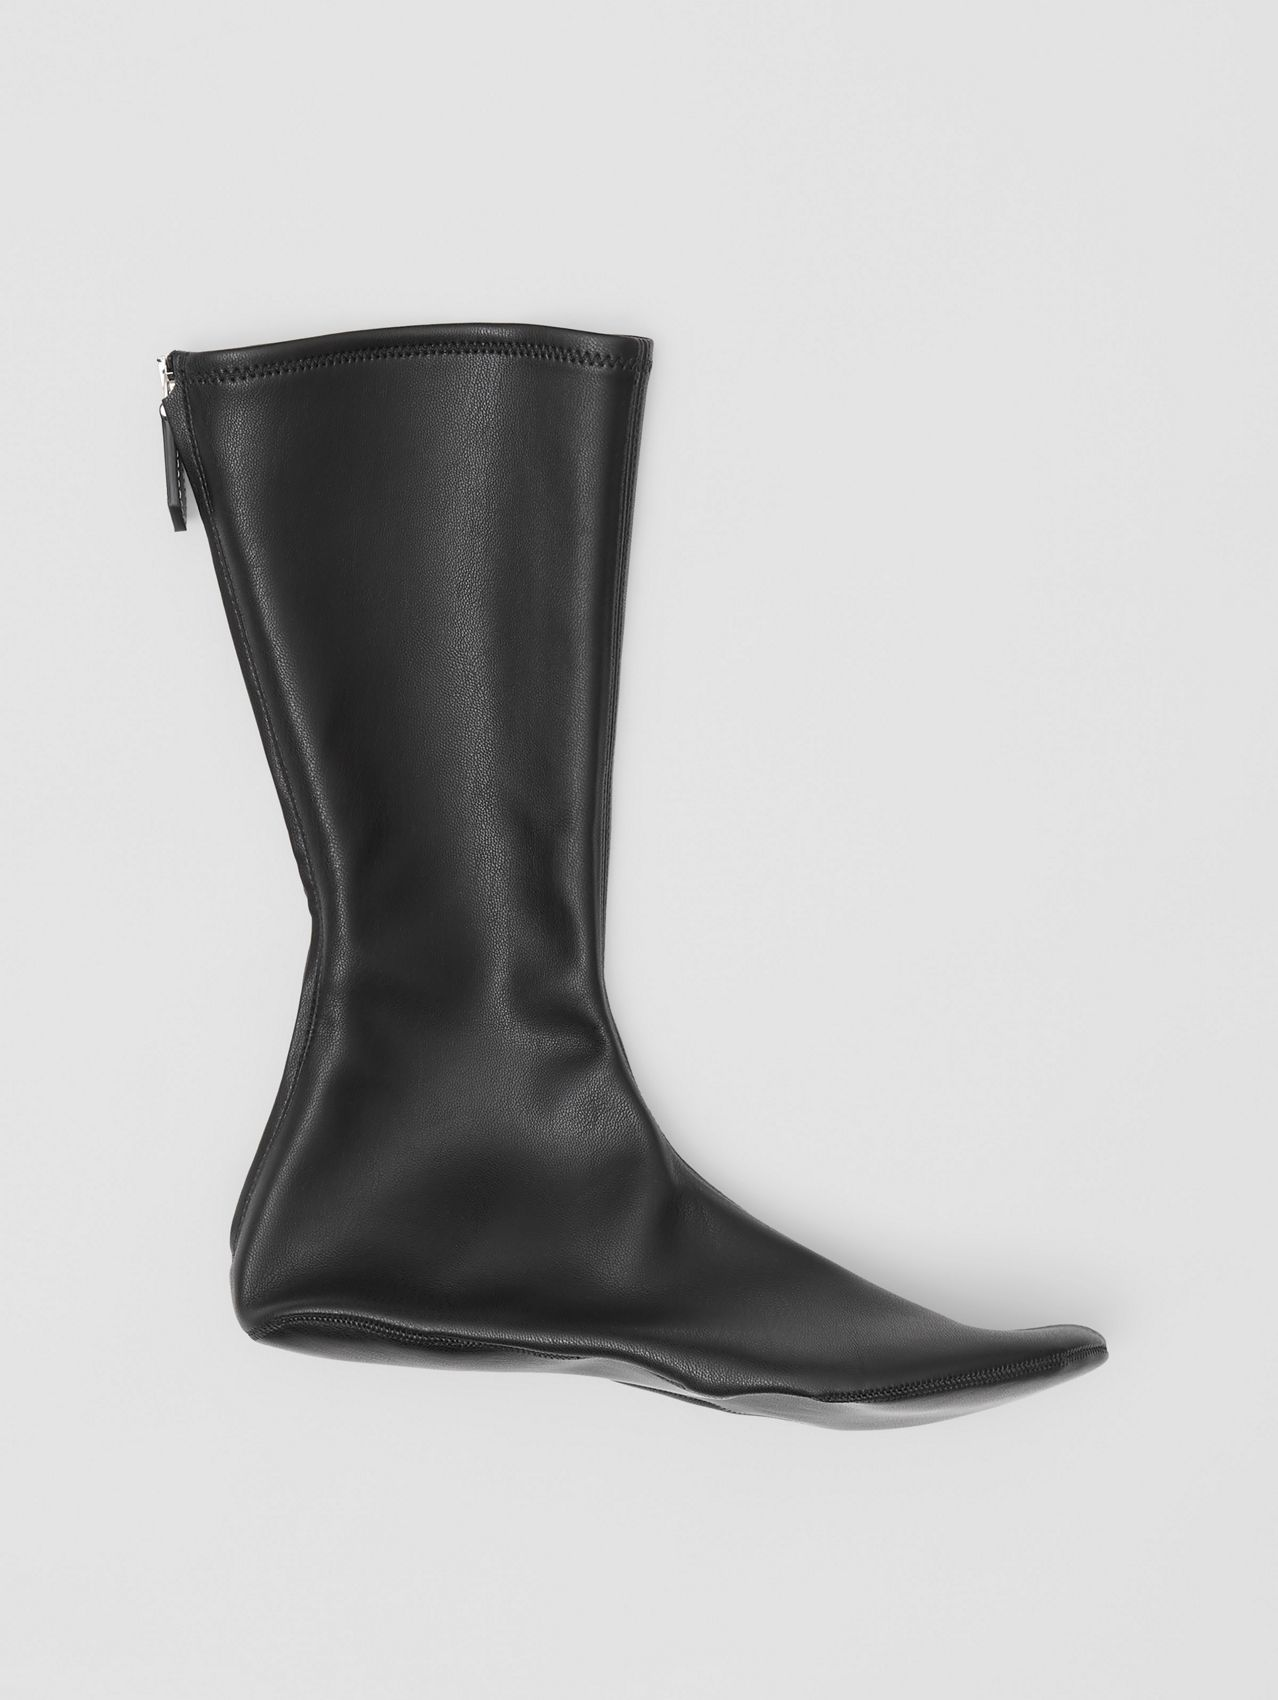 Faux Leather Mid-calf Socks in Black